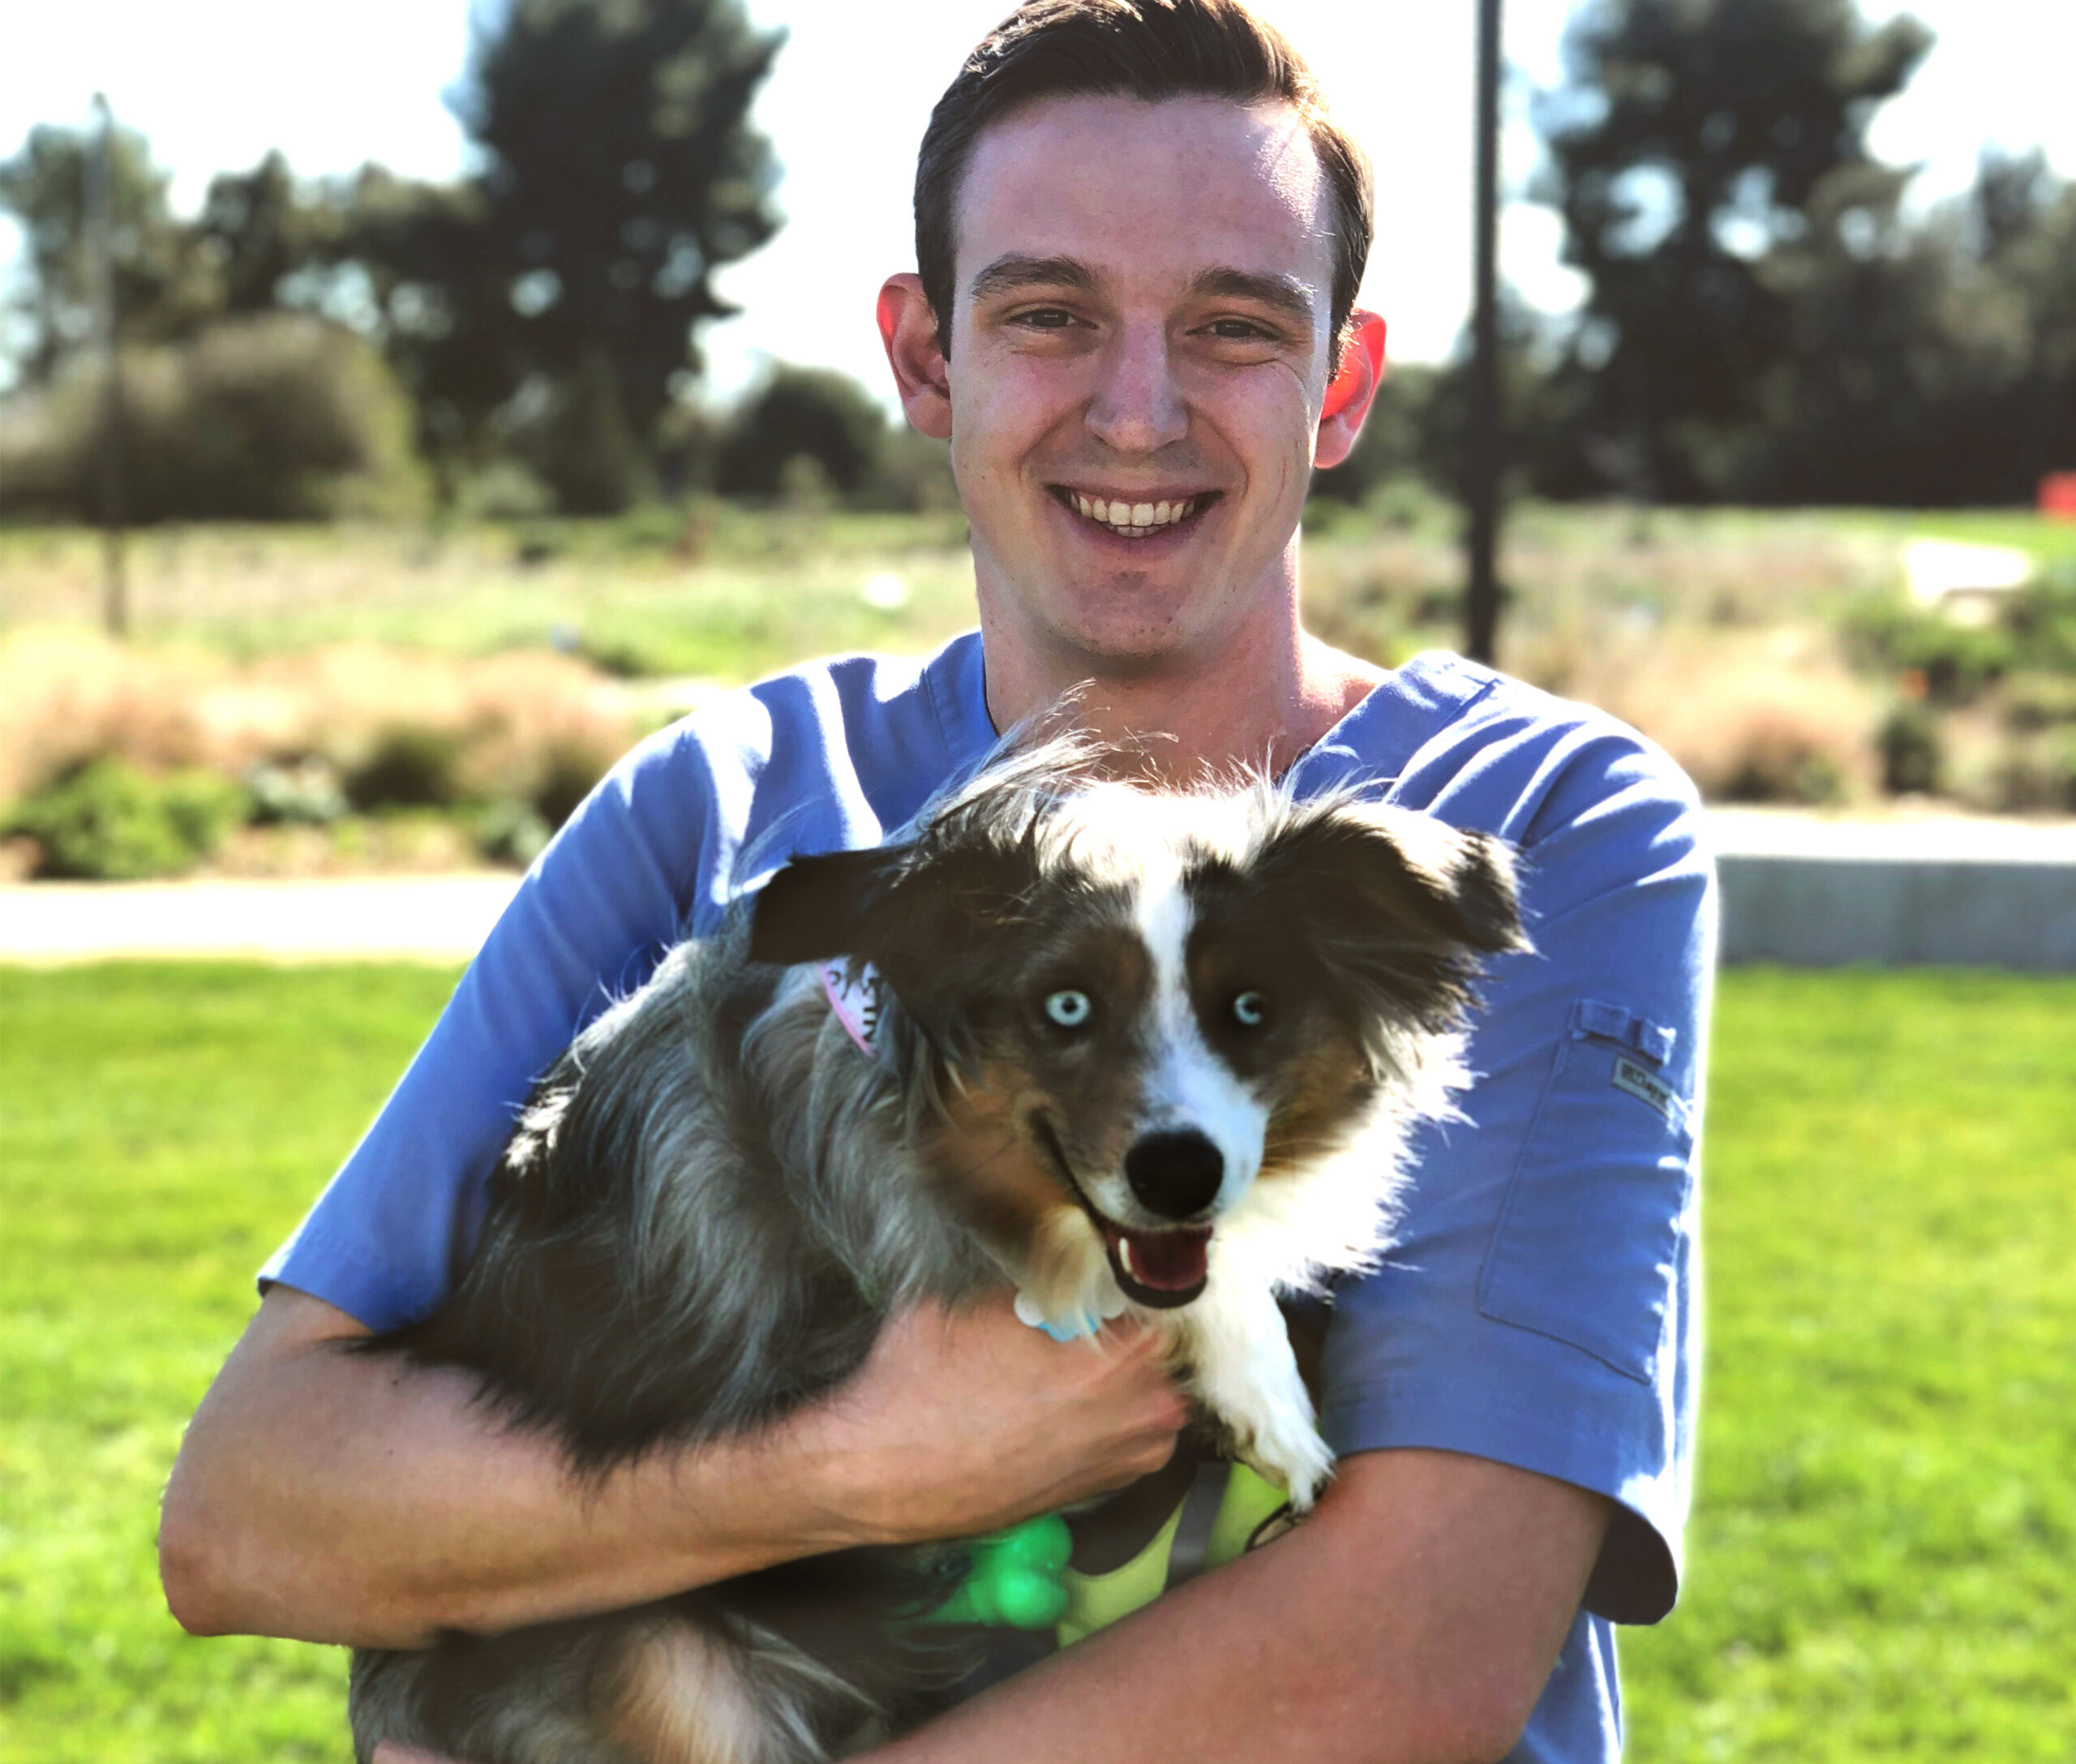 Getting to Know Your Student Rep: Ricky Walther, the Aspiring DVM with a Heart for Serving Others